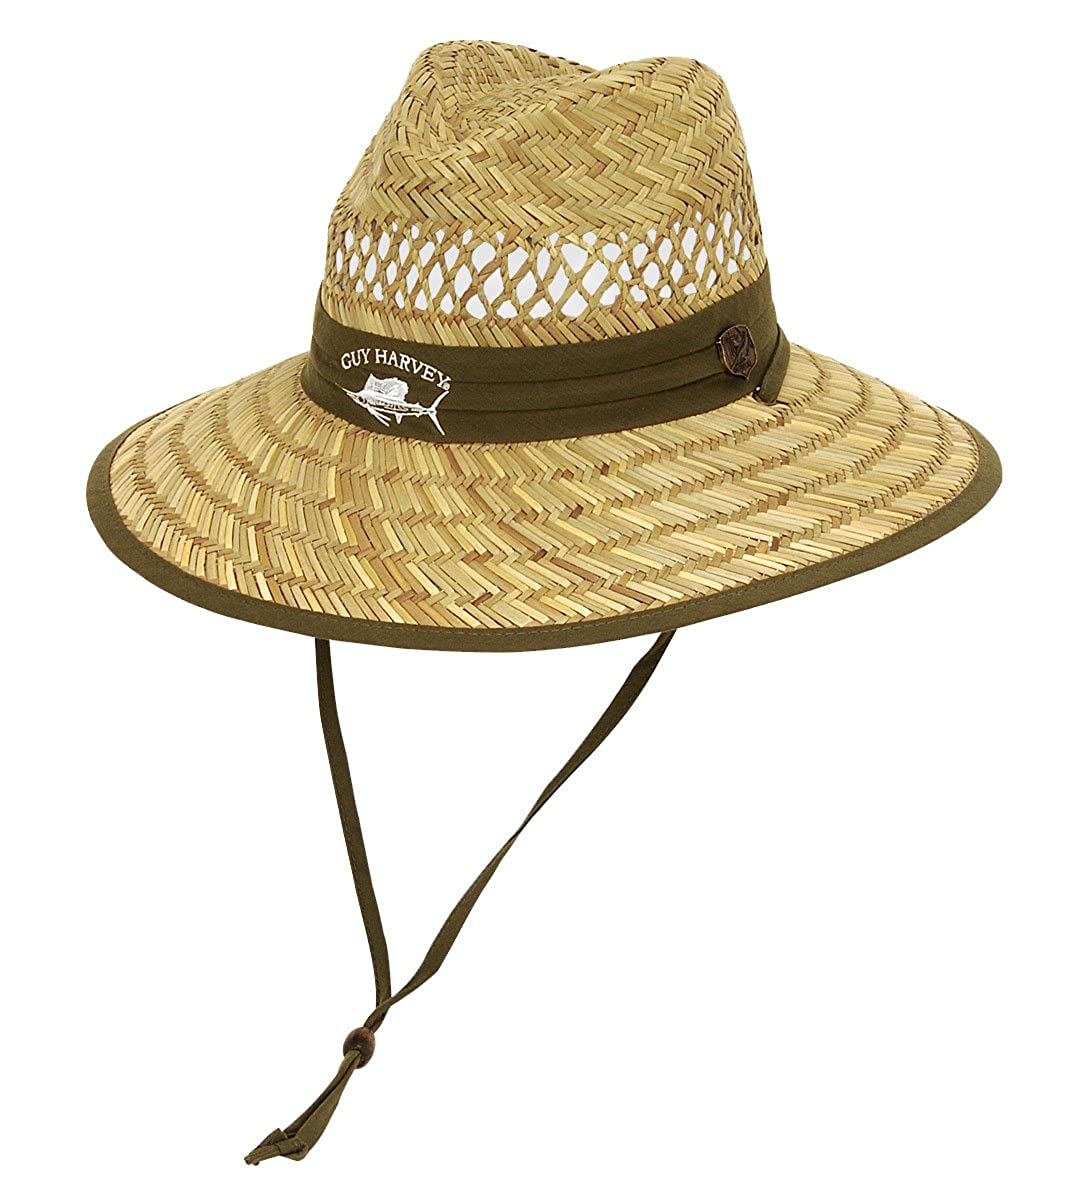 e960ab39d393b Guy Harvey Mens Sailfish Straw Fishing Hat One Size Green at Amazon Men s  Clothing store